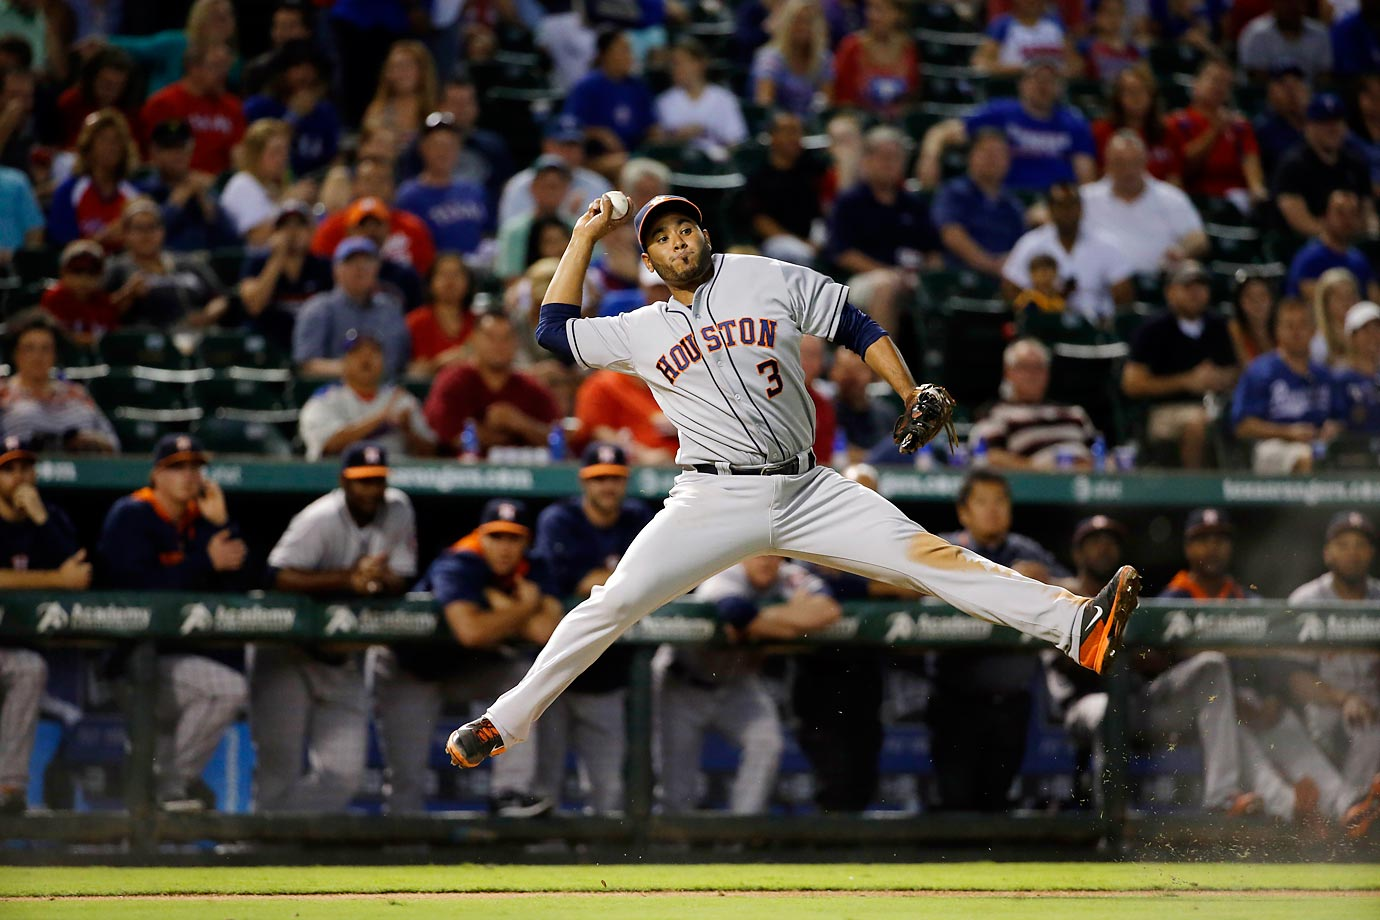 Houston Astros third baseman Gregorio Petit throws to first in a game against the Texas Rangers. The Rangers won 5-1.